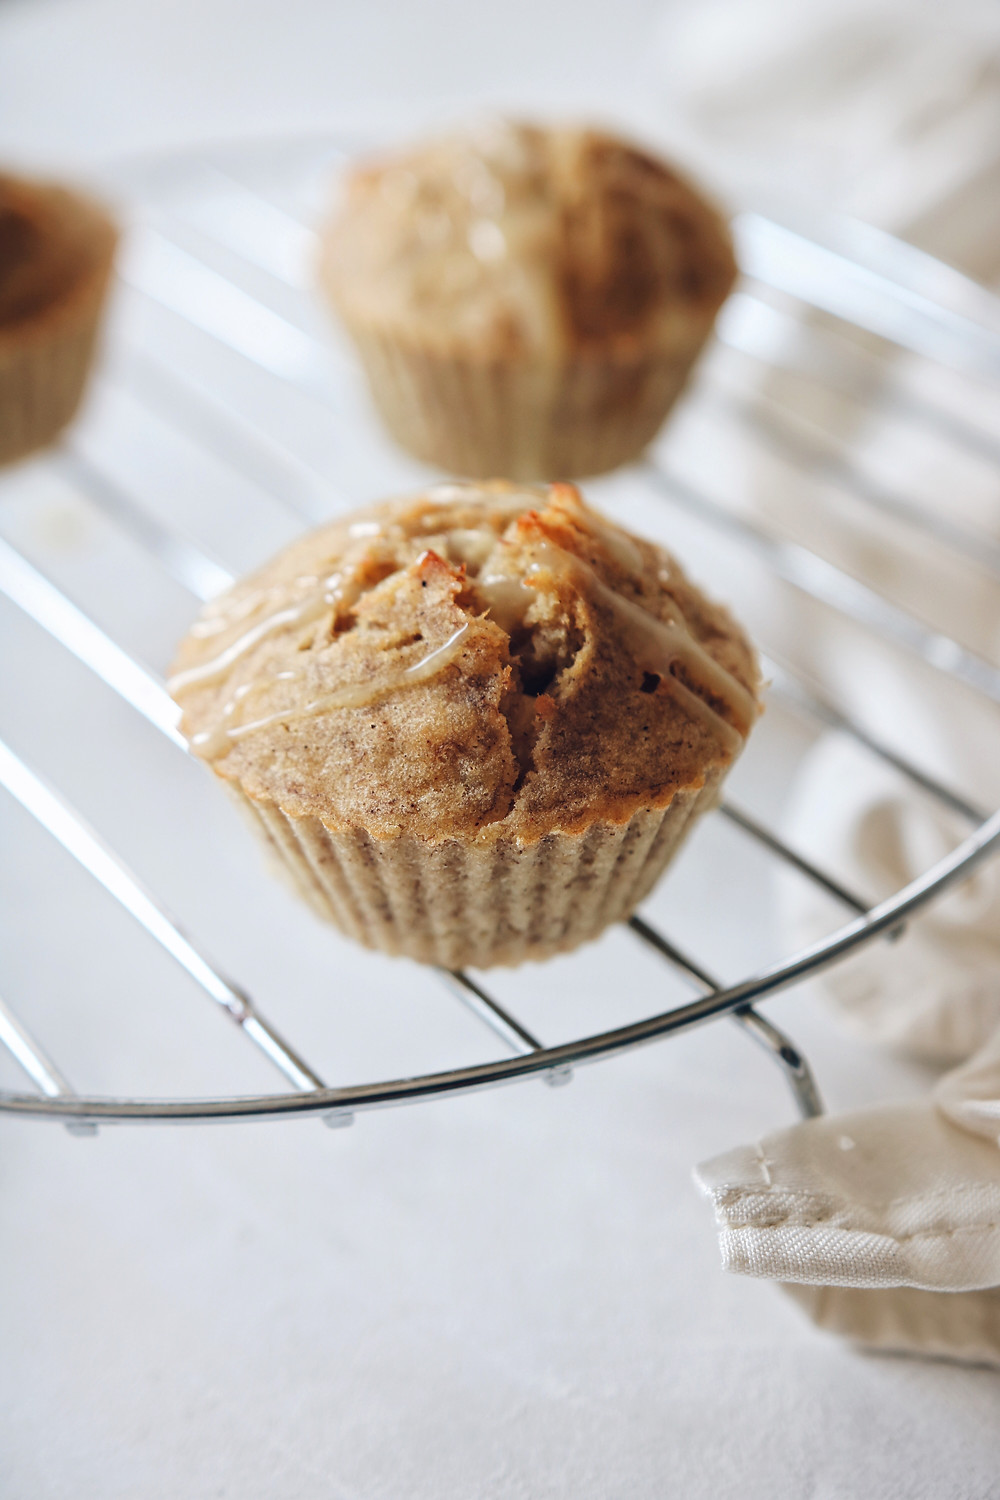 A side view of gluten free banana muffins, others in the background.